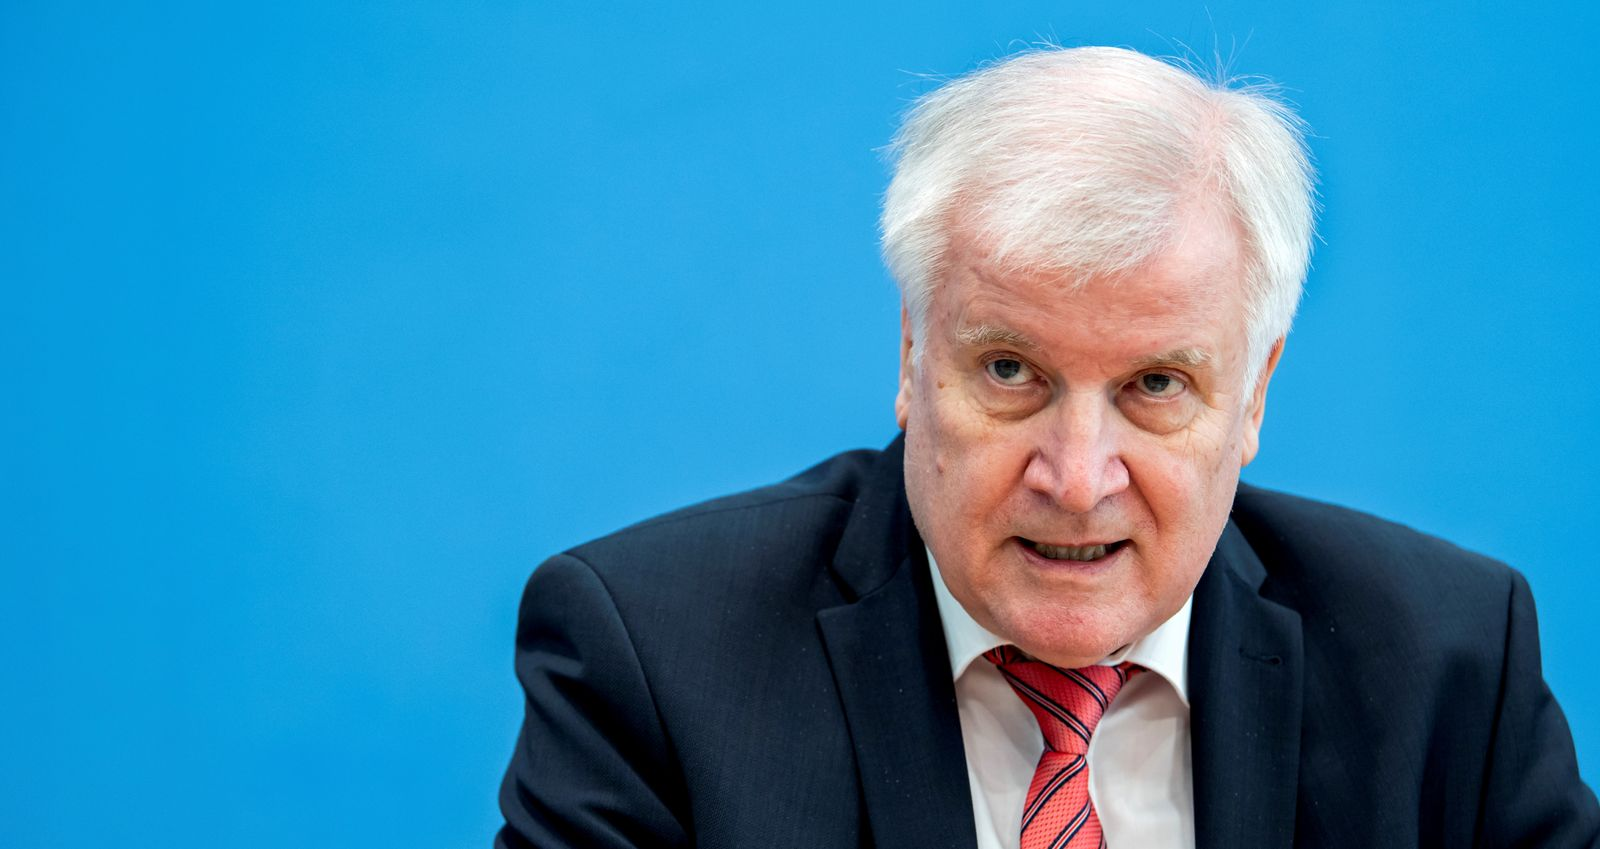 FILE PHOTO: News conference of German Interior Minister Seehofer on German national cyber defence report 2020